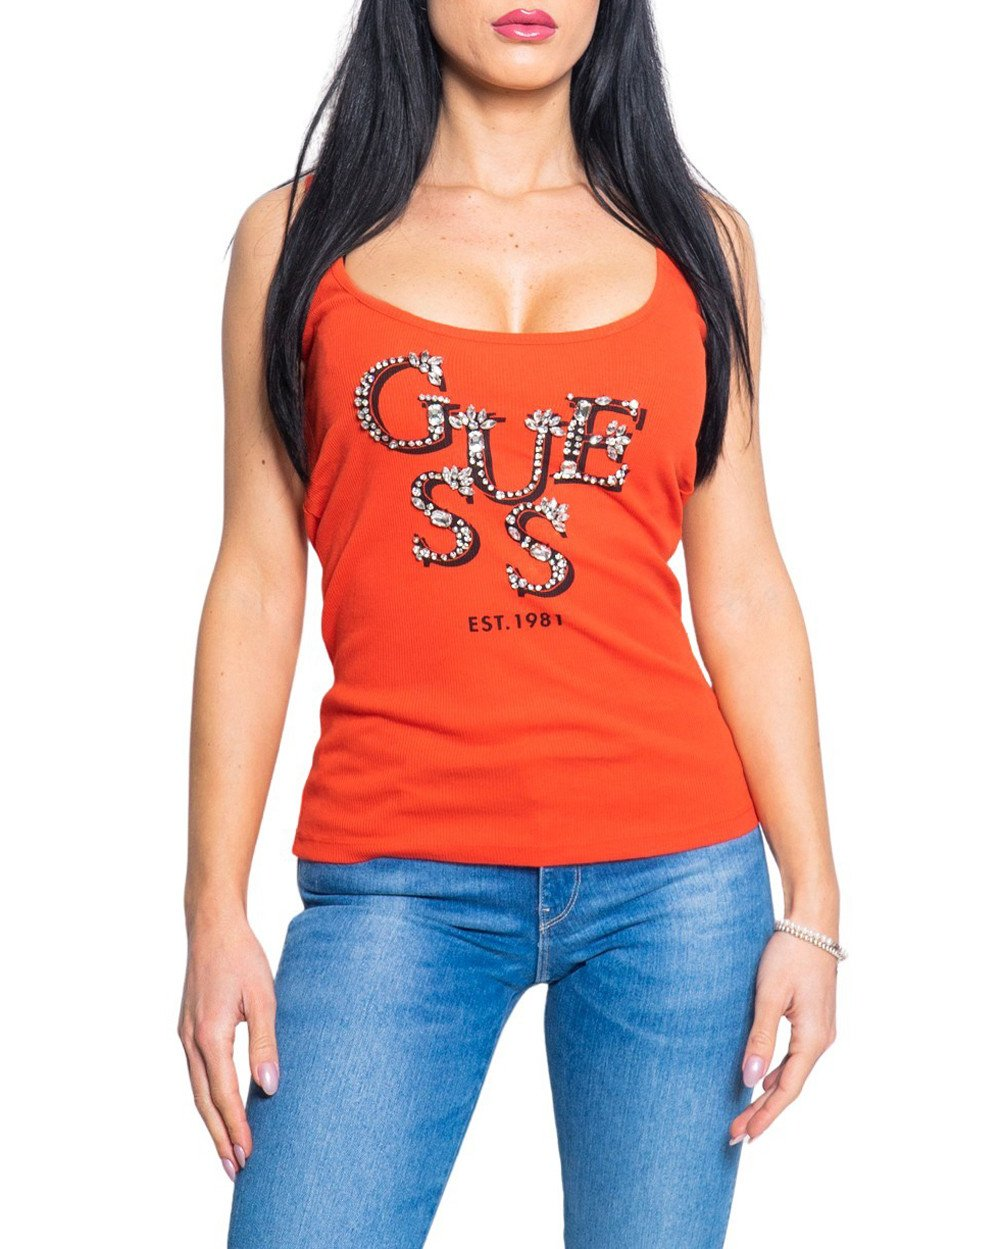 Guess Women's Tank Top Various Colours 218274 - red XS